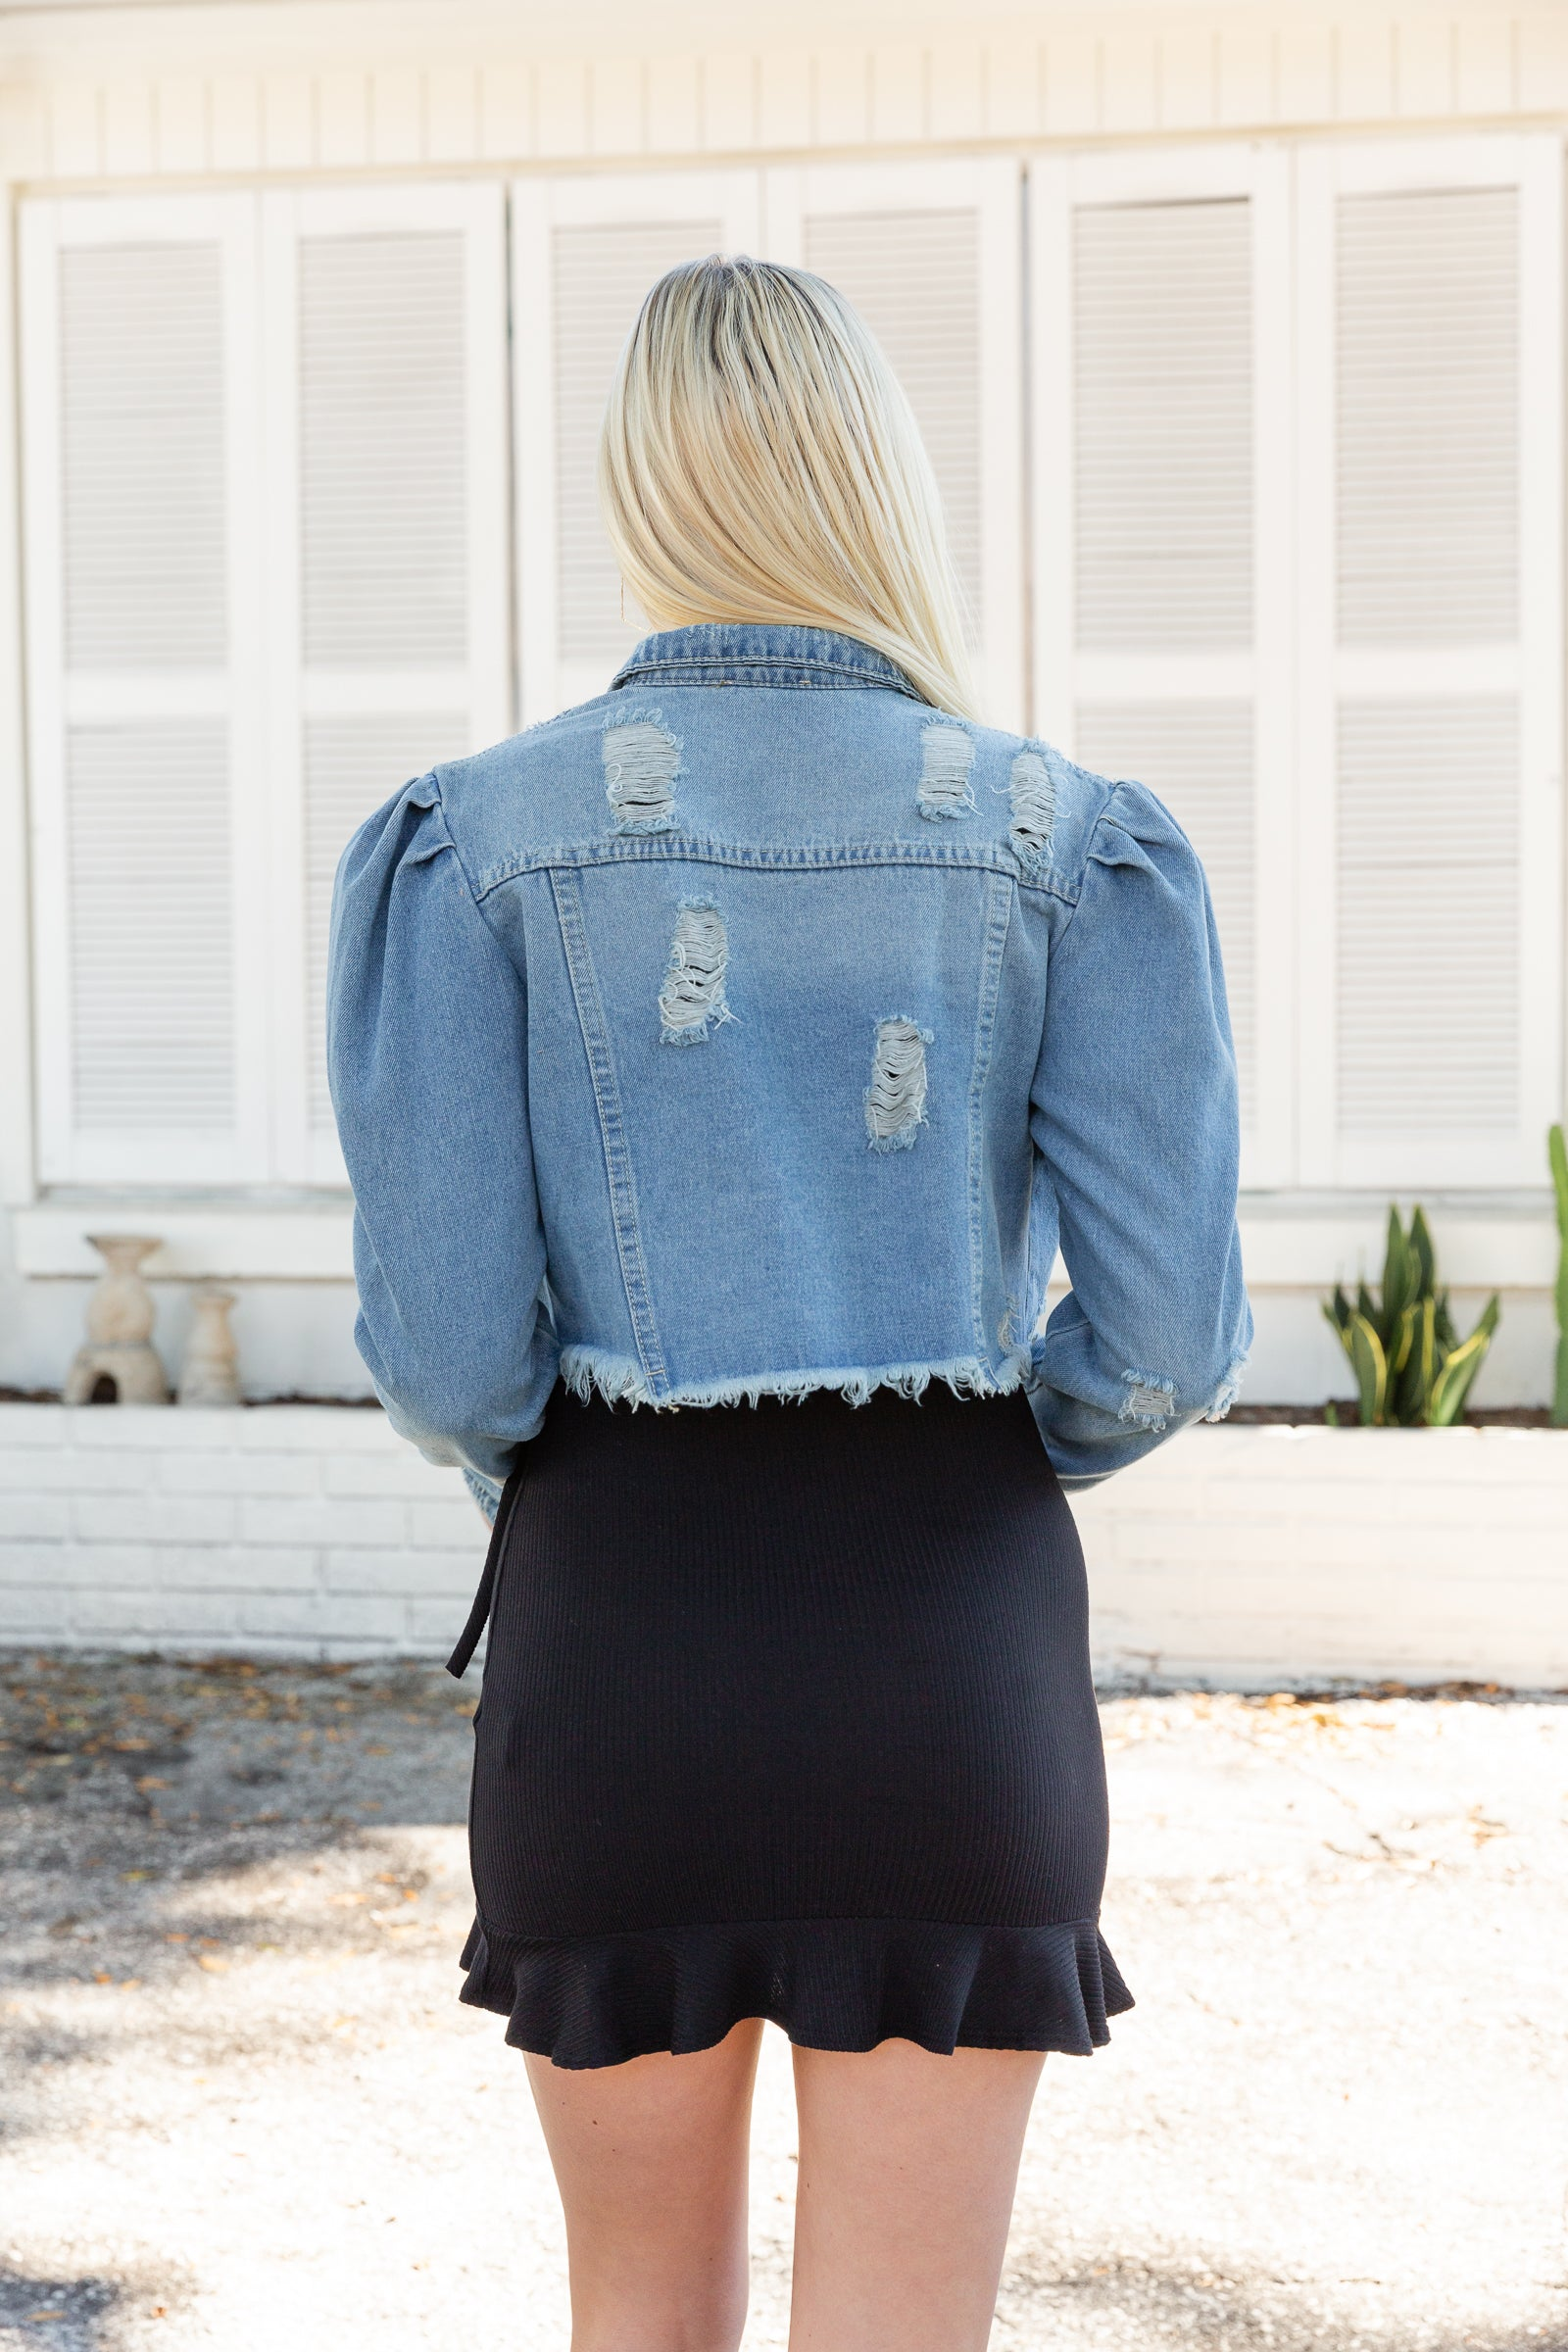 This medium wash denim jacket has long puffed shoulder sleeves that meet a collared neckline with a button-down center with two front pockets at the chest. It has a cropped bodice with a raw hem.